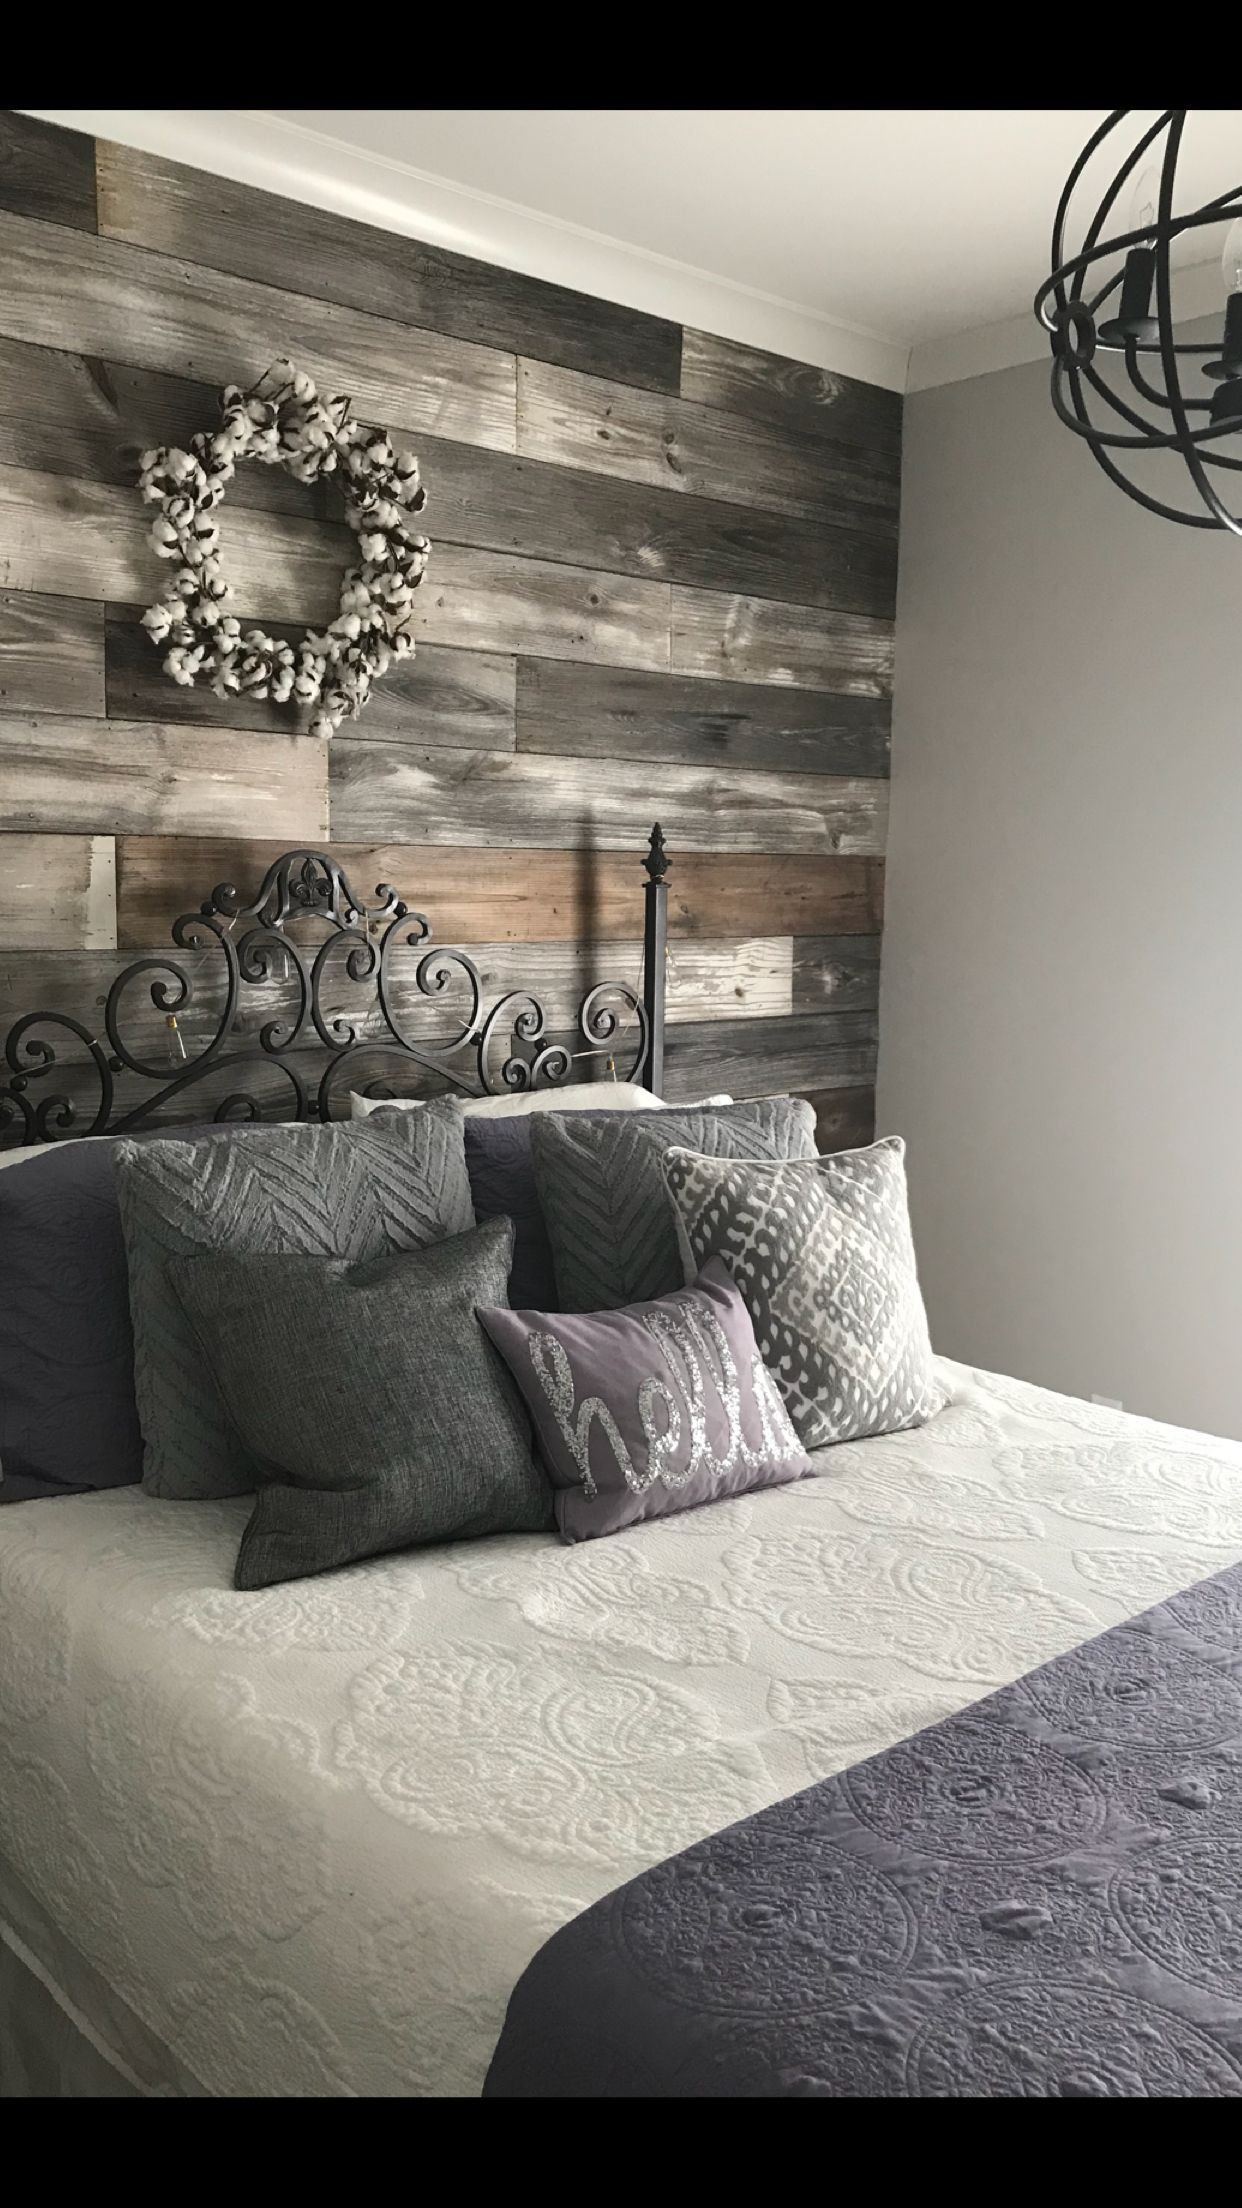 Best Repurposed Shiplap Accent Wall Bedroom Ideas In 2019 With Pictures